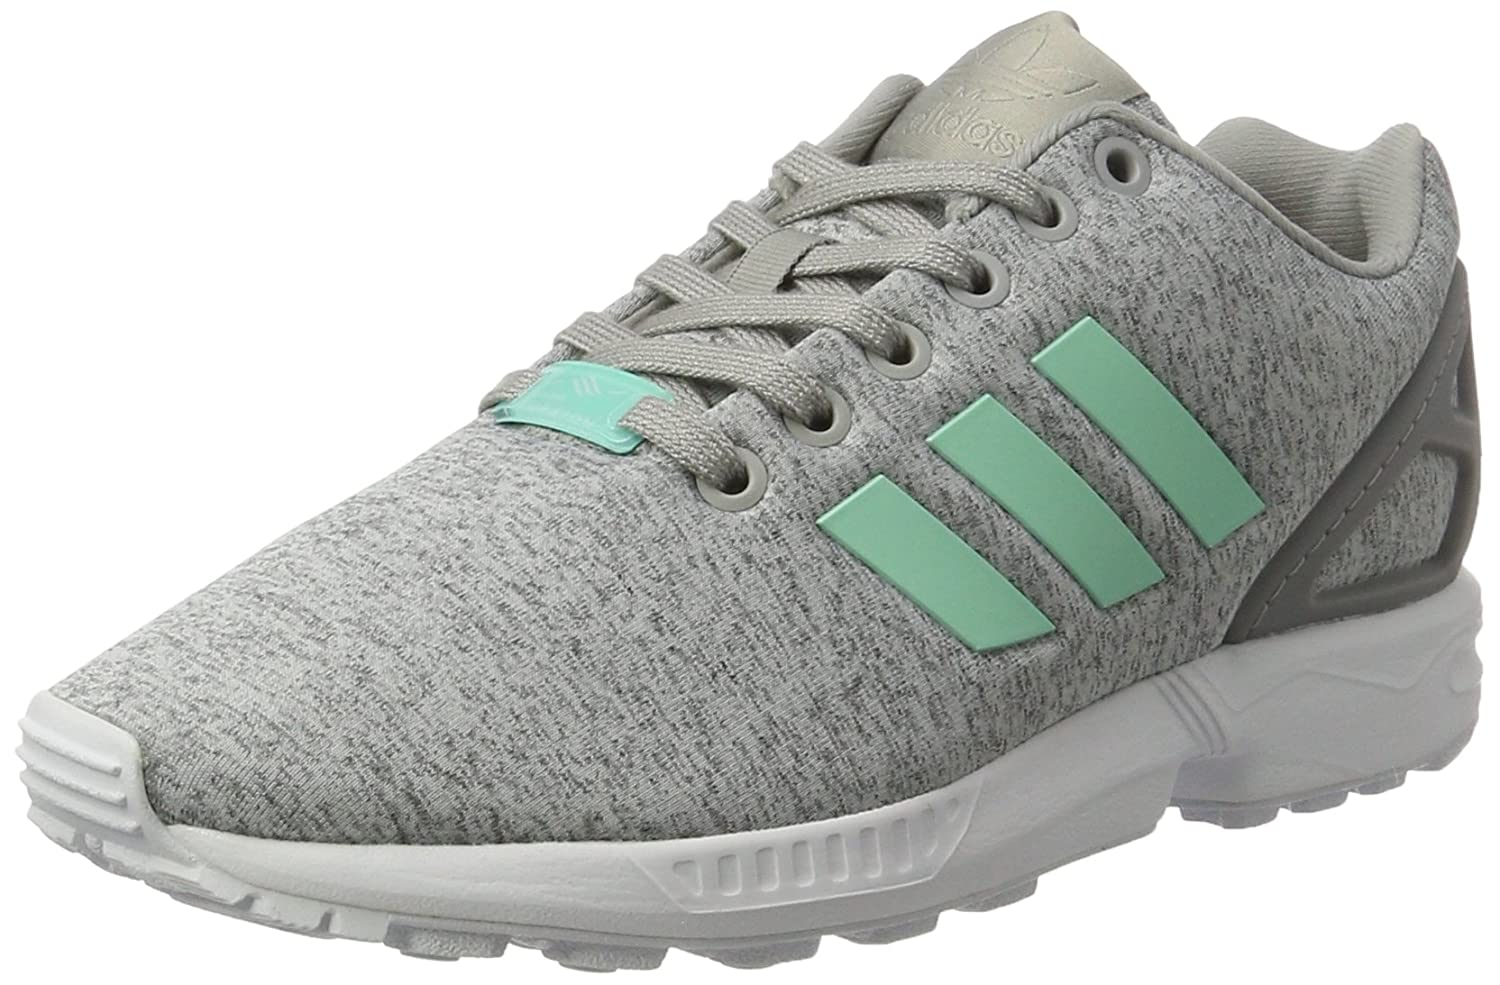 adidas Damen ZX Flux Sneakers  39 1/3 EU|Grau (Medium Grey Heather/Easy Mint/Ftwr White)